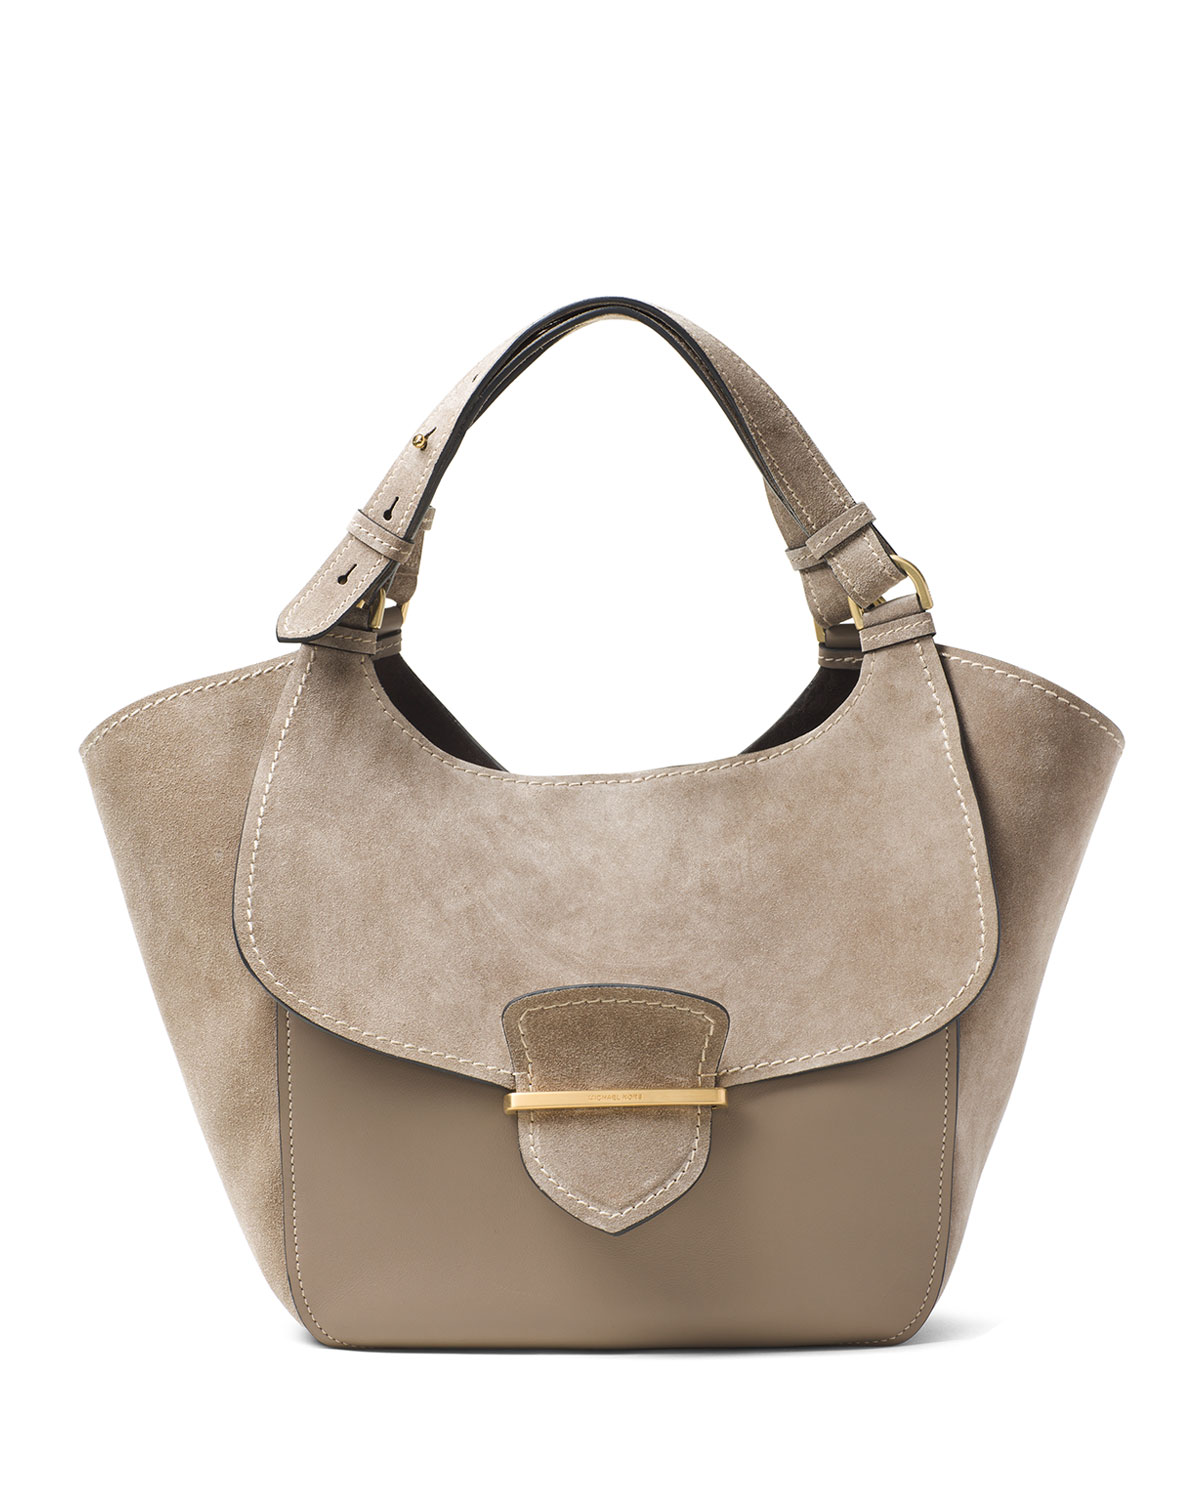 38734aa5483c Michael Kors Josie Large Suede & Leather Shopper Tote Bag, Dark Taupe